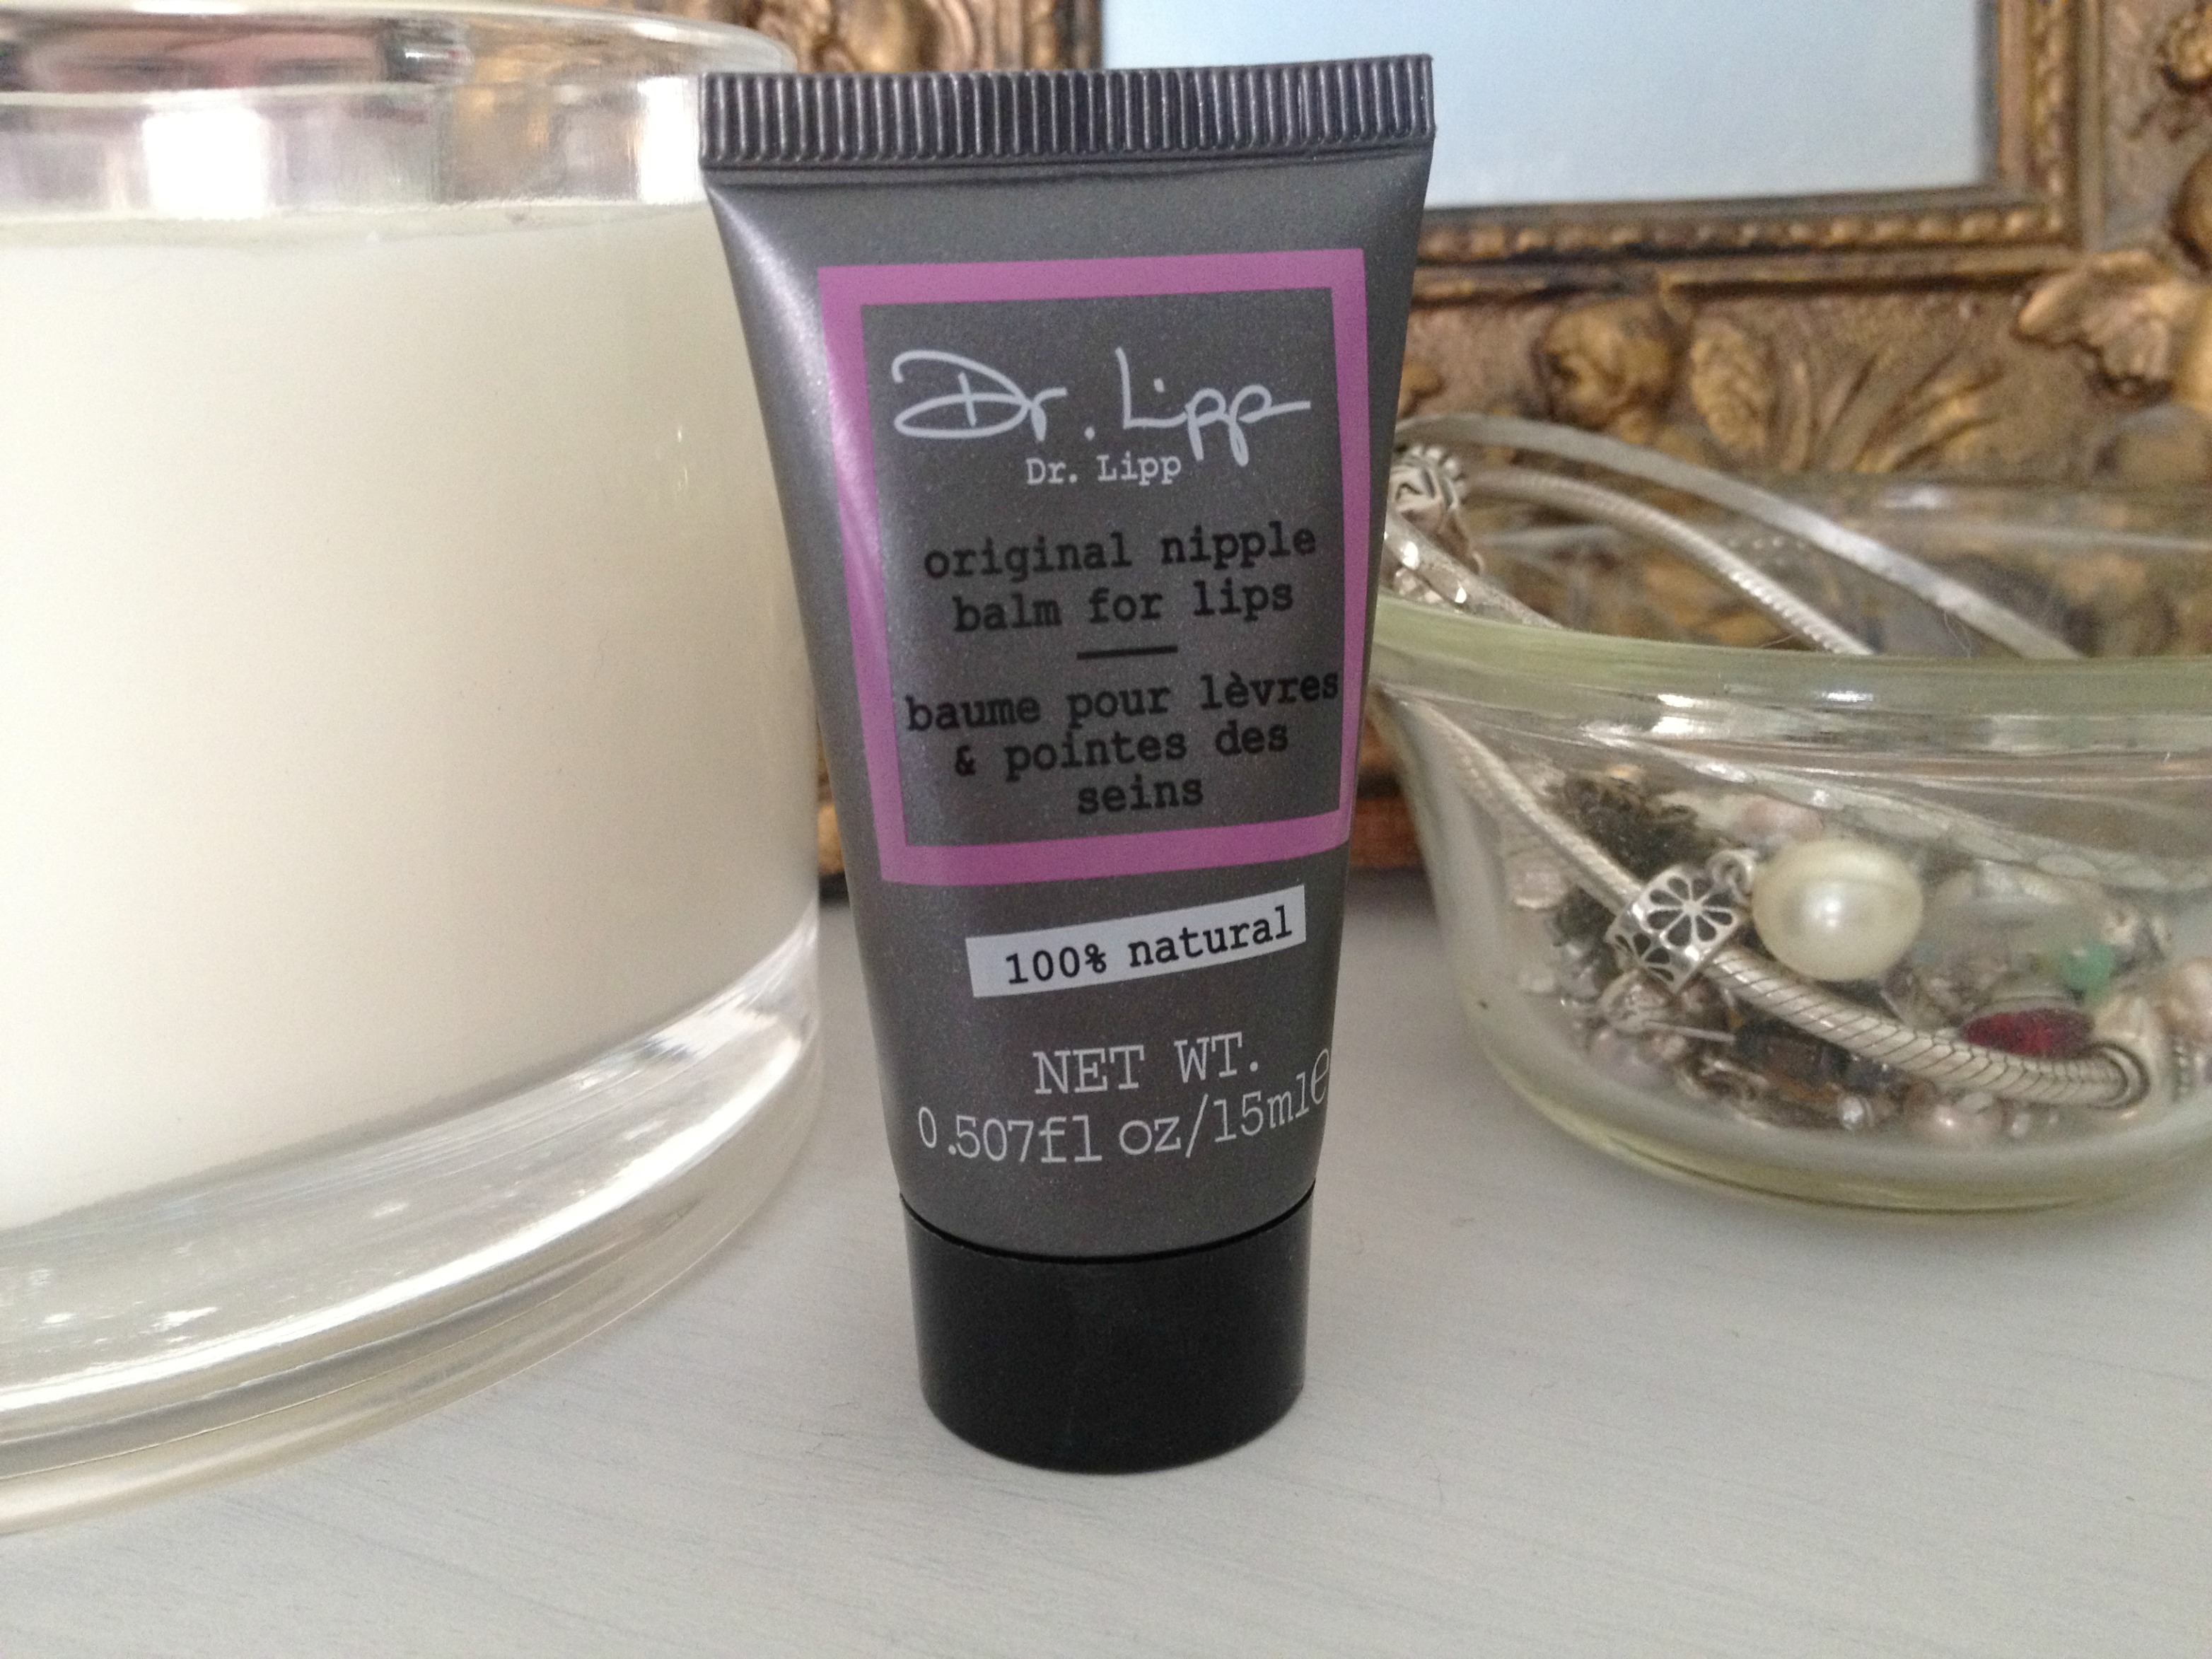 Dr_Lipp_Nipple_Balm_For_Lips (3)